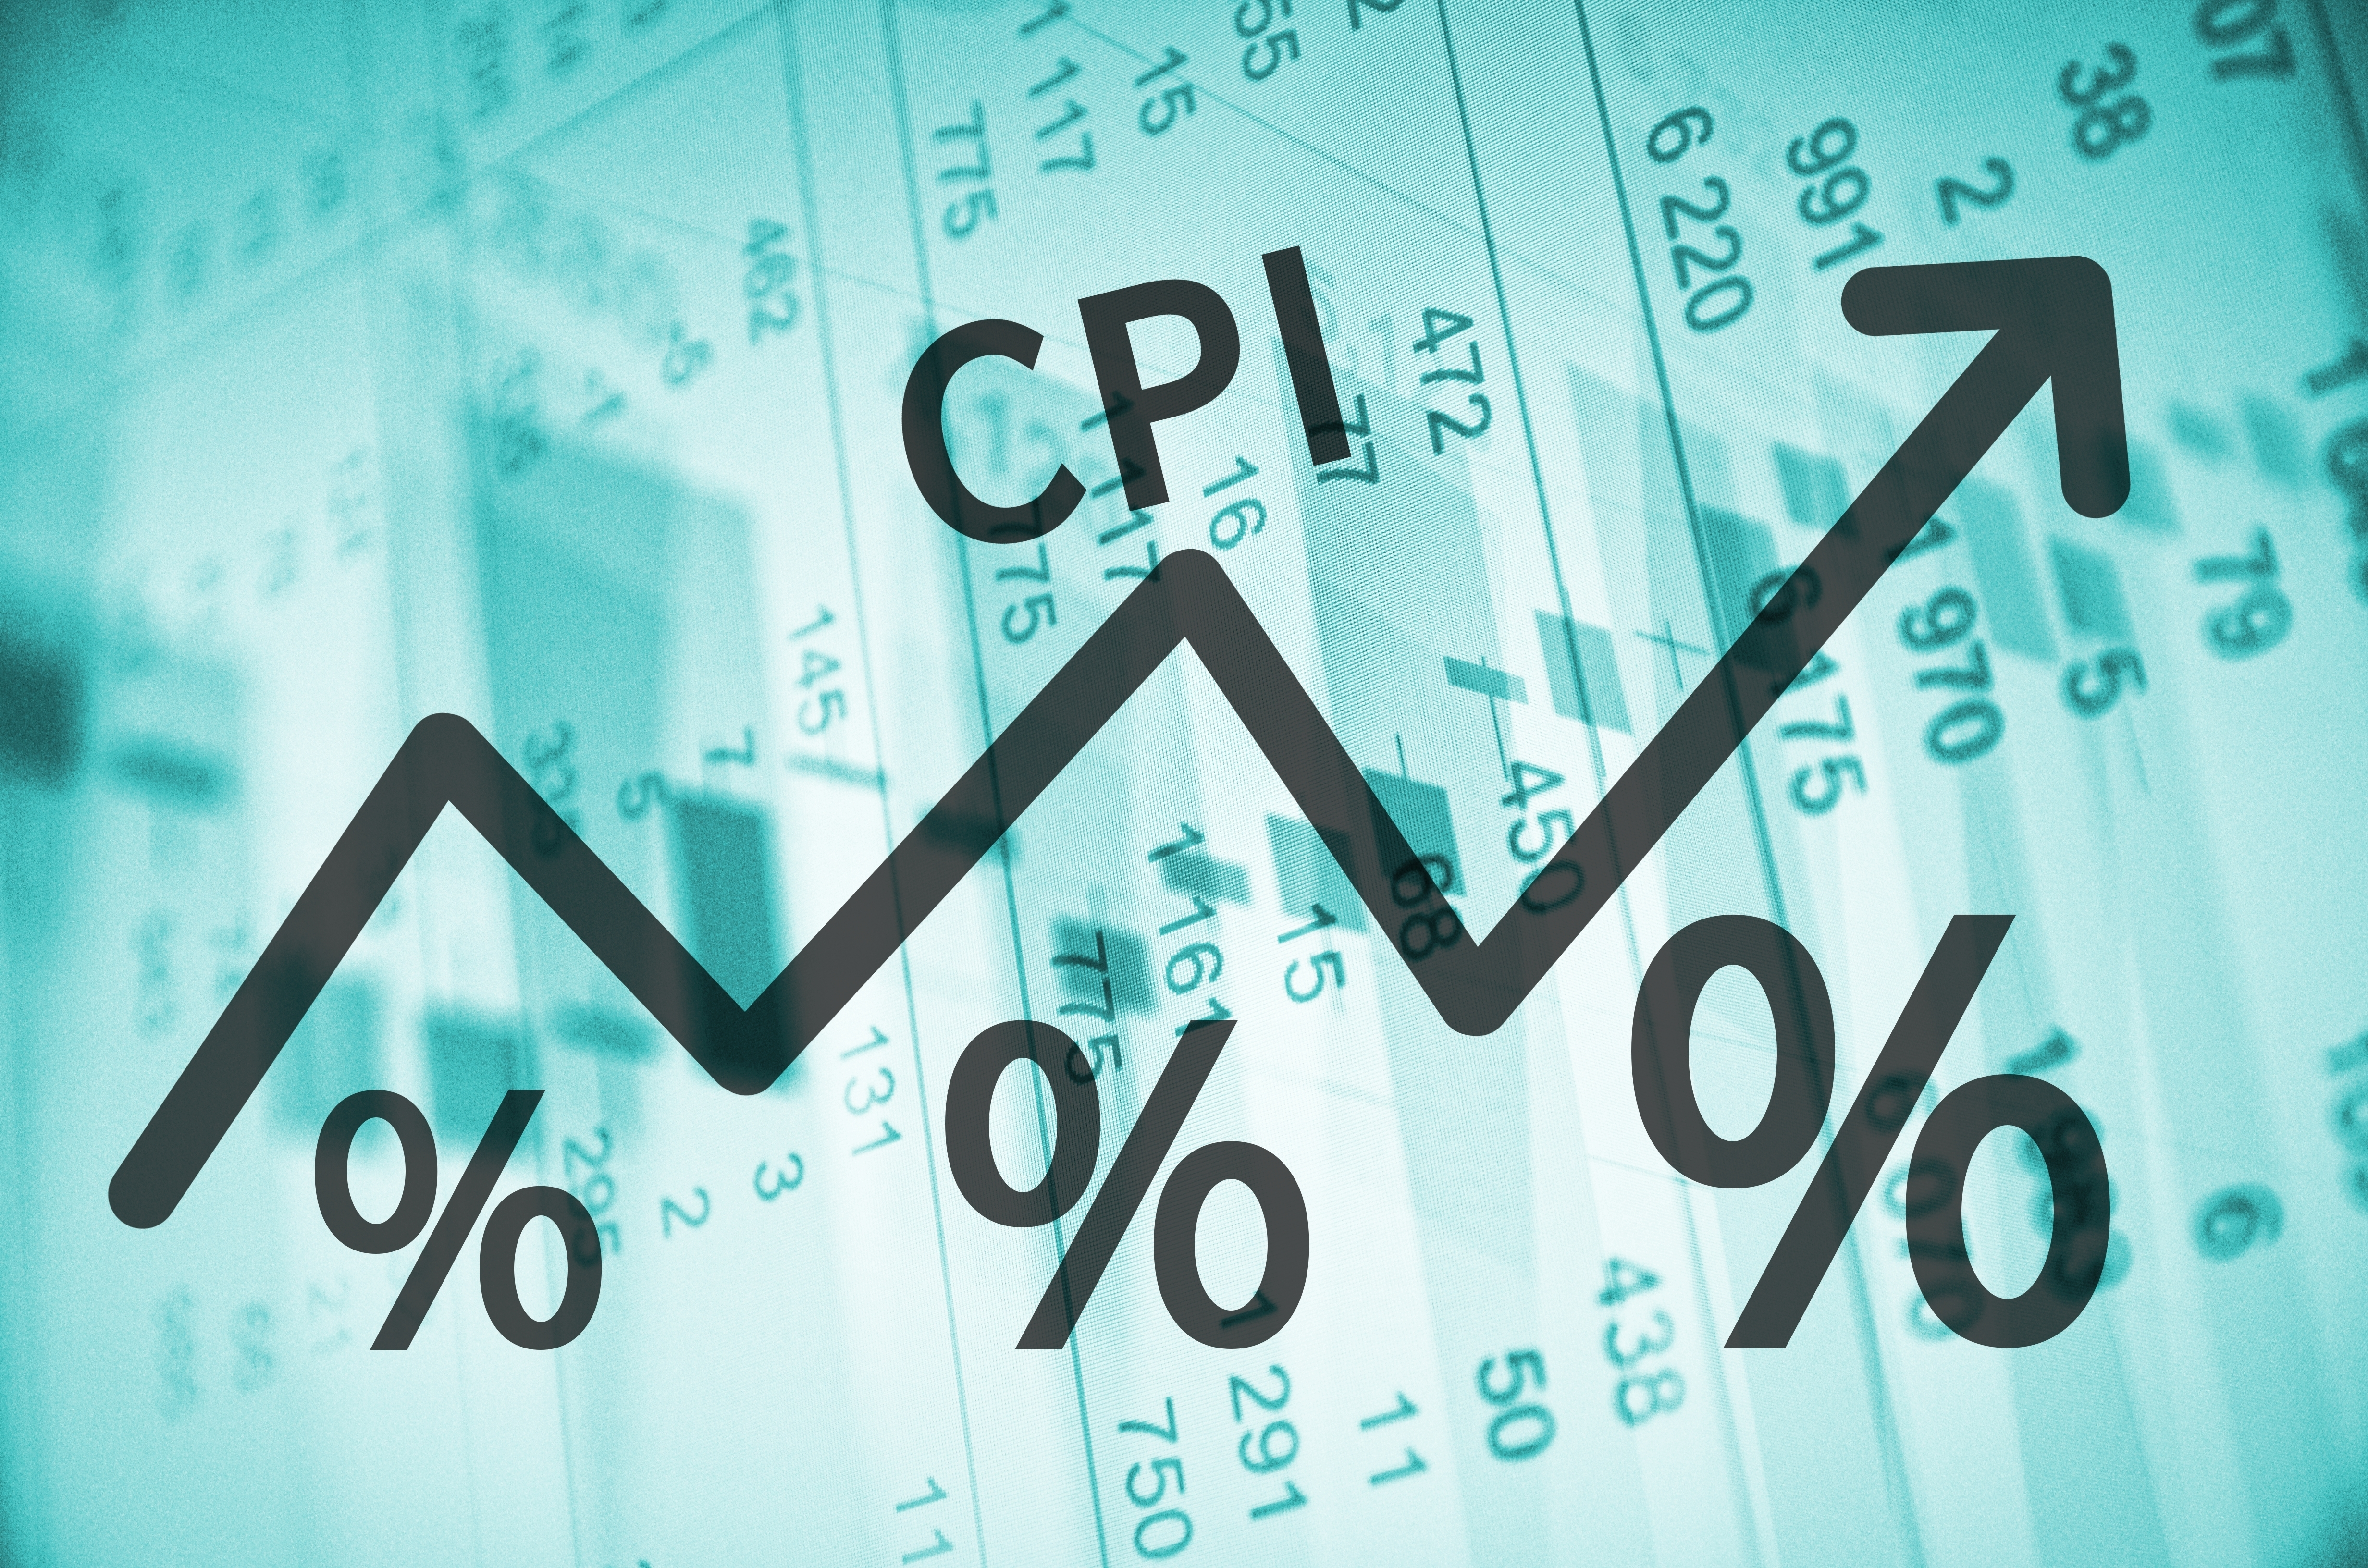 The CPI is used to evaluate price changes associated with a country'scost of living.